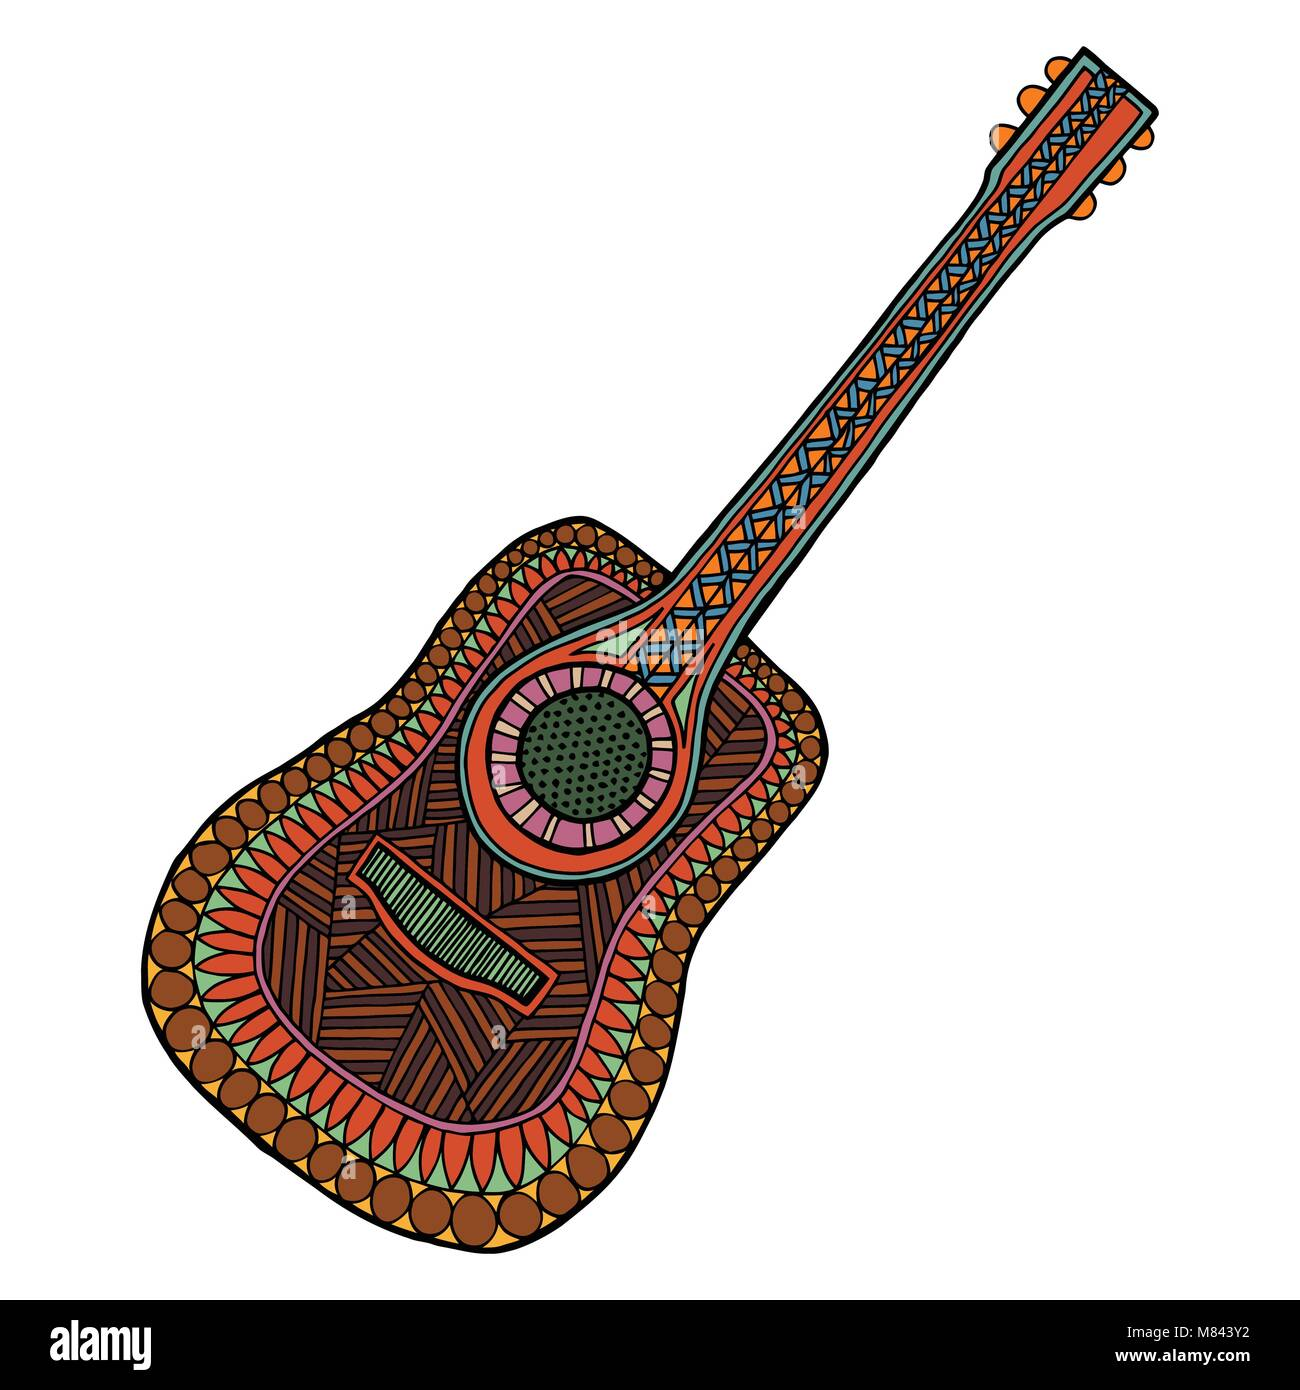 Sound The Tattoo Photos Sound The Tattoo Images Alamy